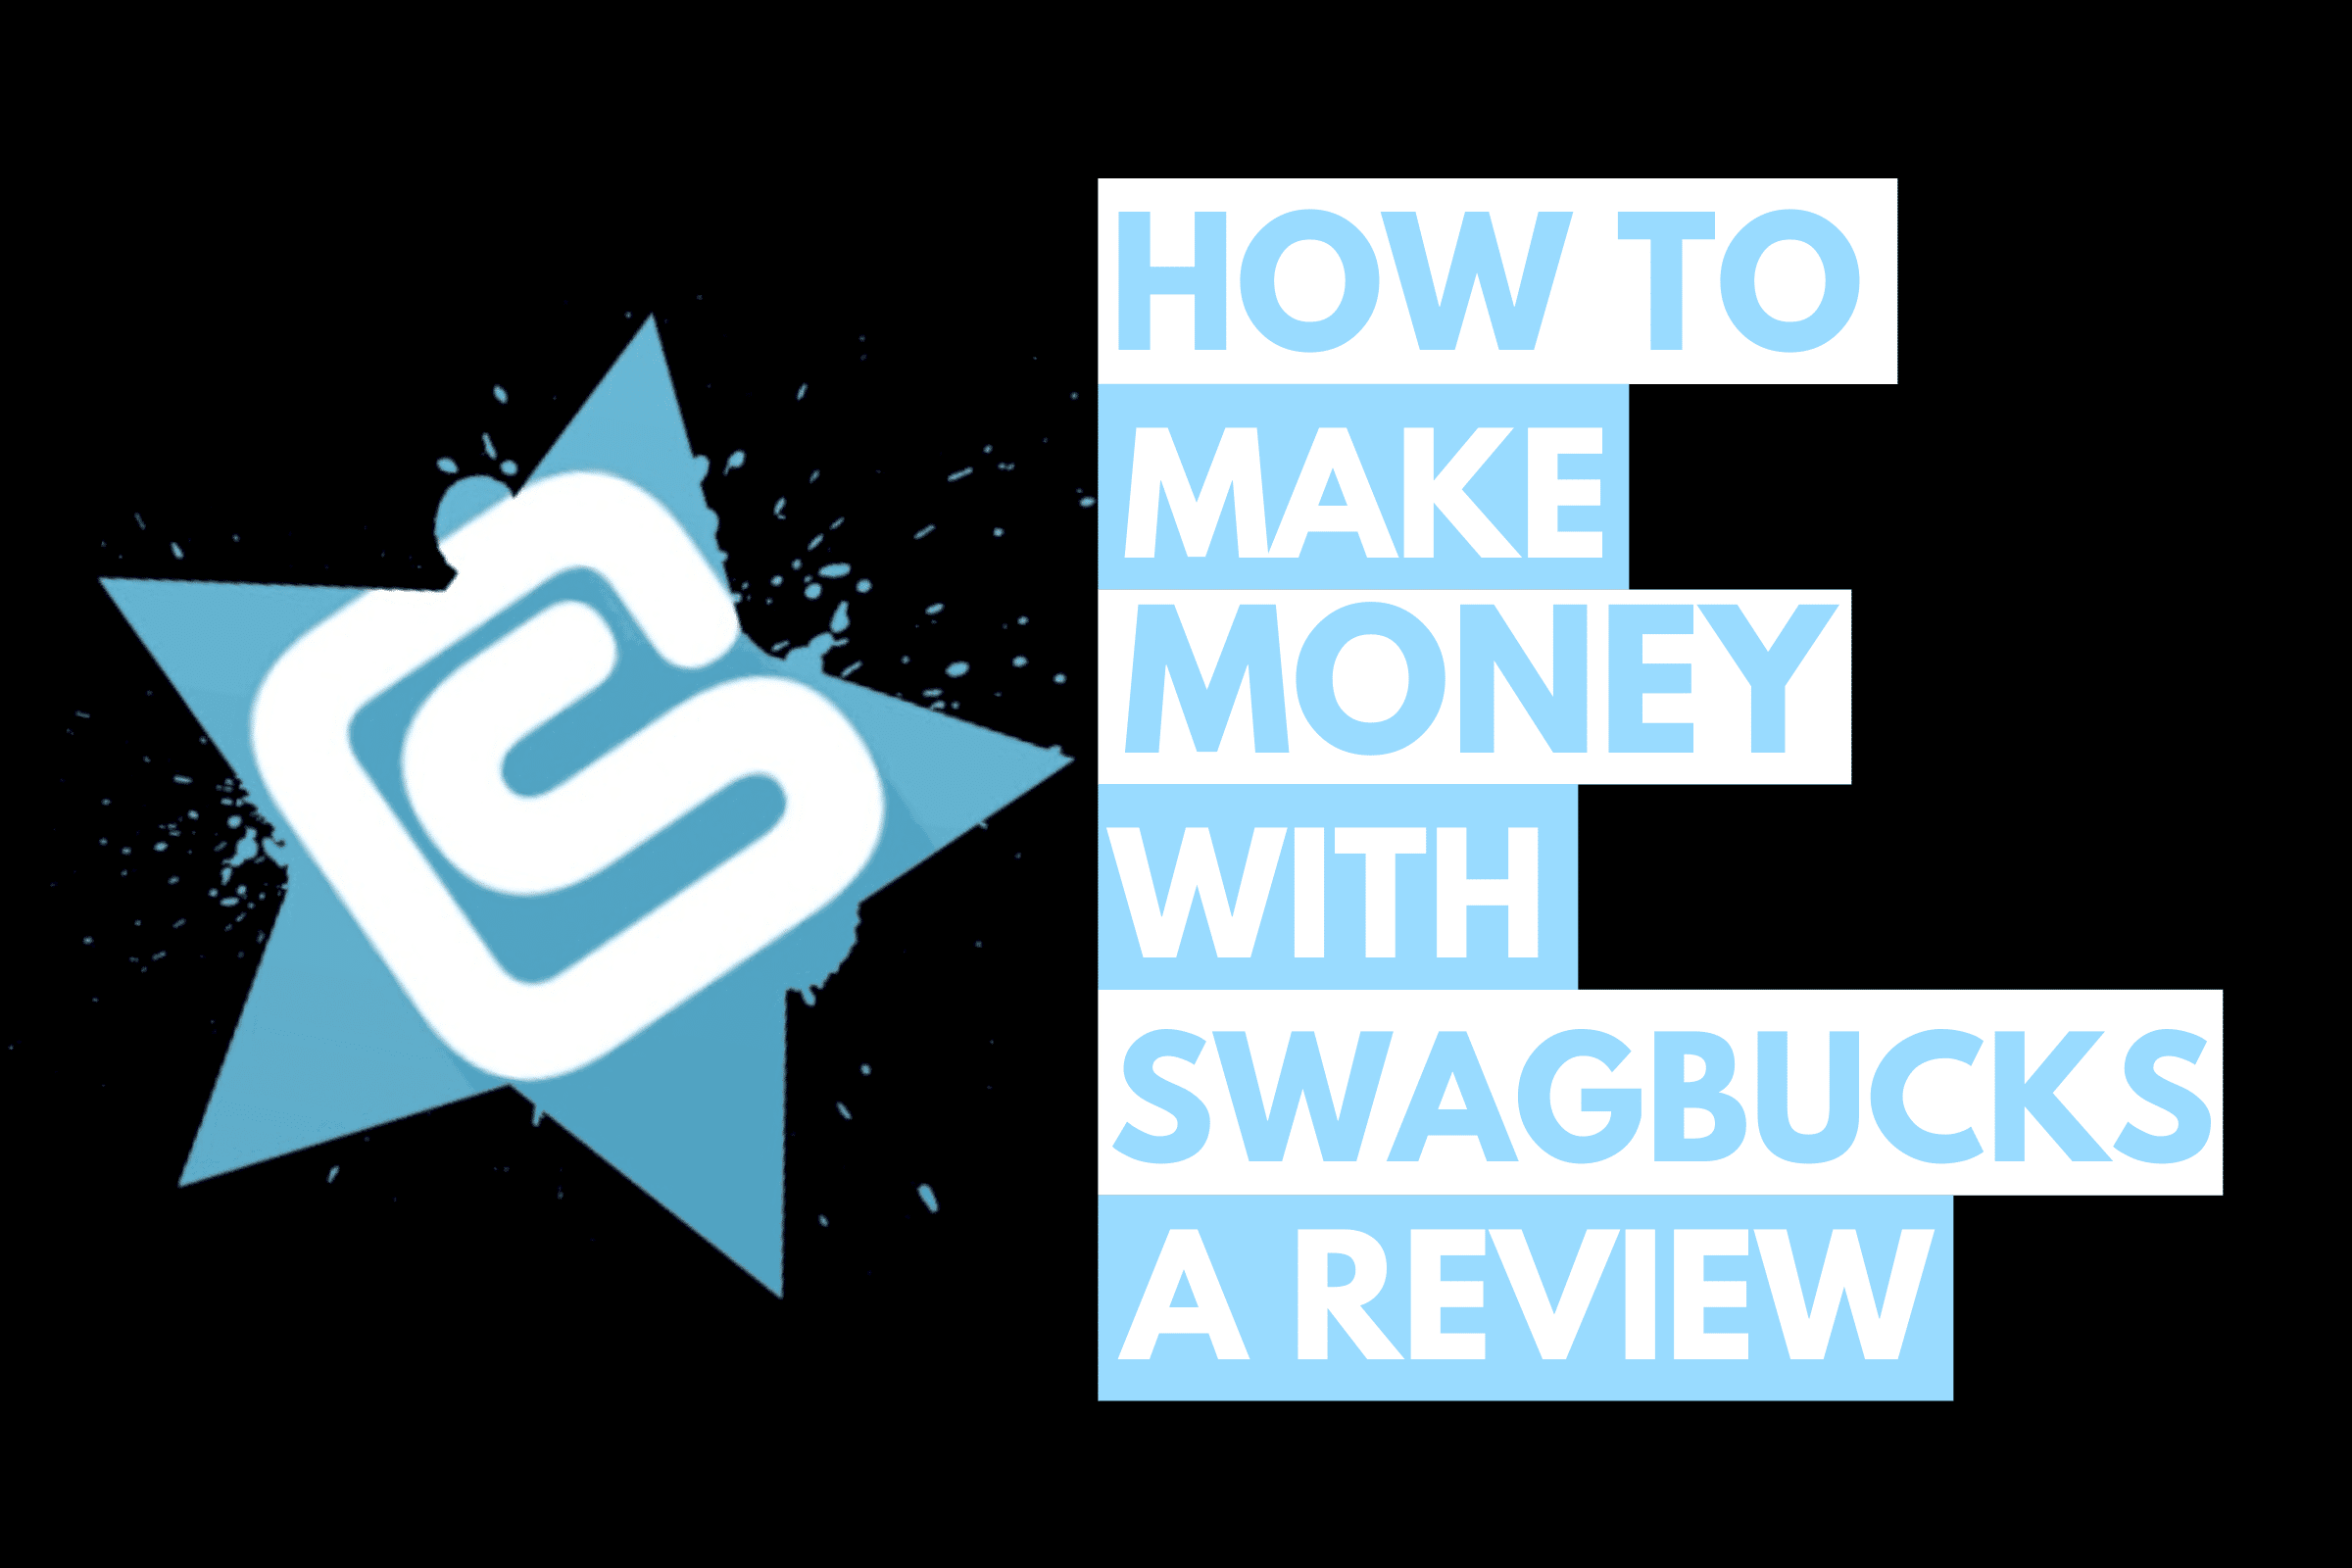 How to make money with Swagbucks - a review